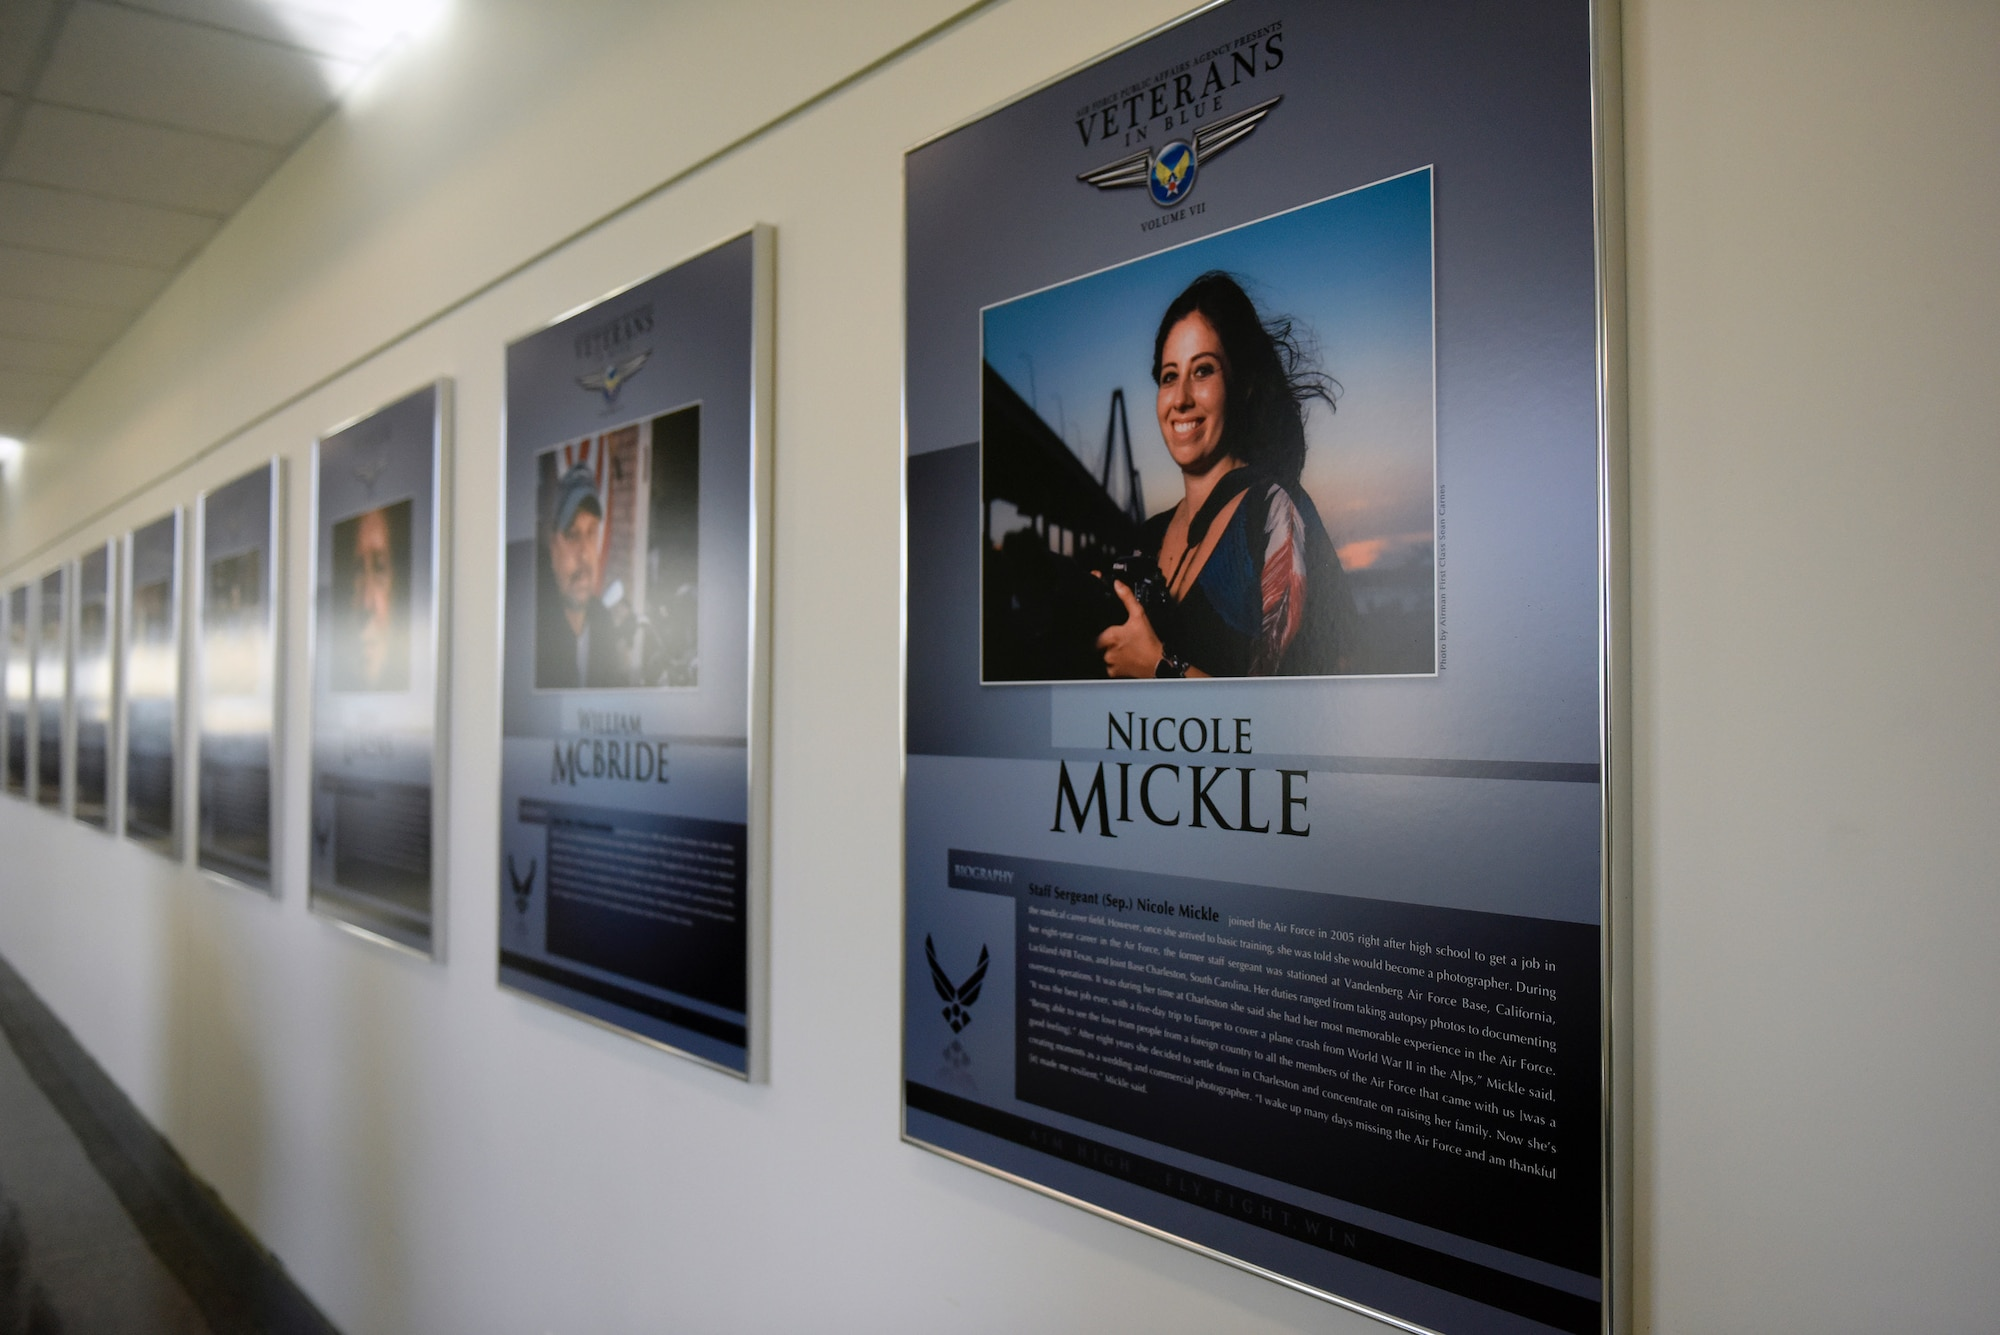 The seventh volume of Veterans in Blue is now available online. The exhibit captures 28 stories of heroism and service by Air Force veterans. Each veteran's portrait is also displayed in the Pentagon. (U.S. Air Force photo/Staff Sgt. Alyssa Gibson)